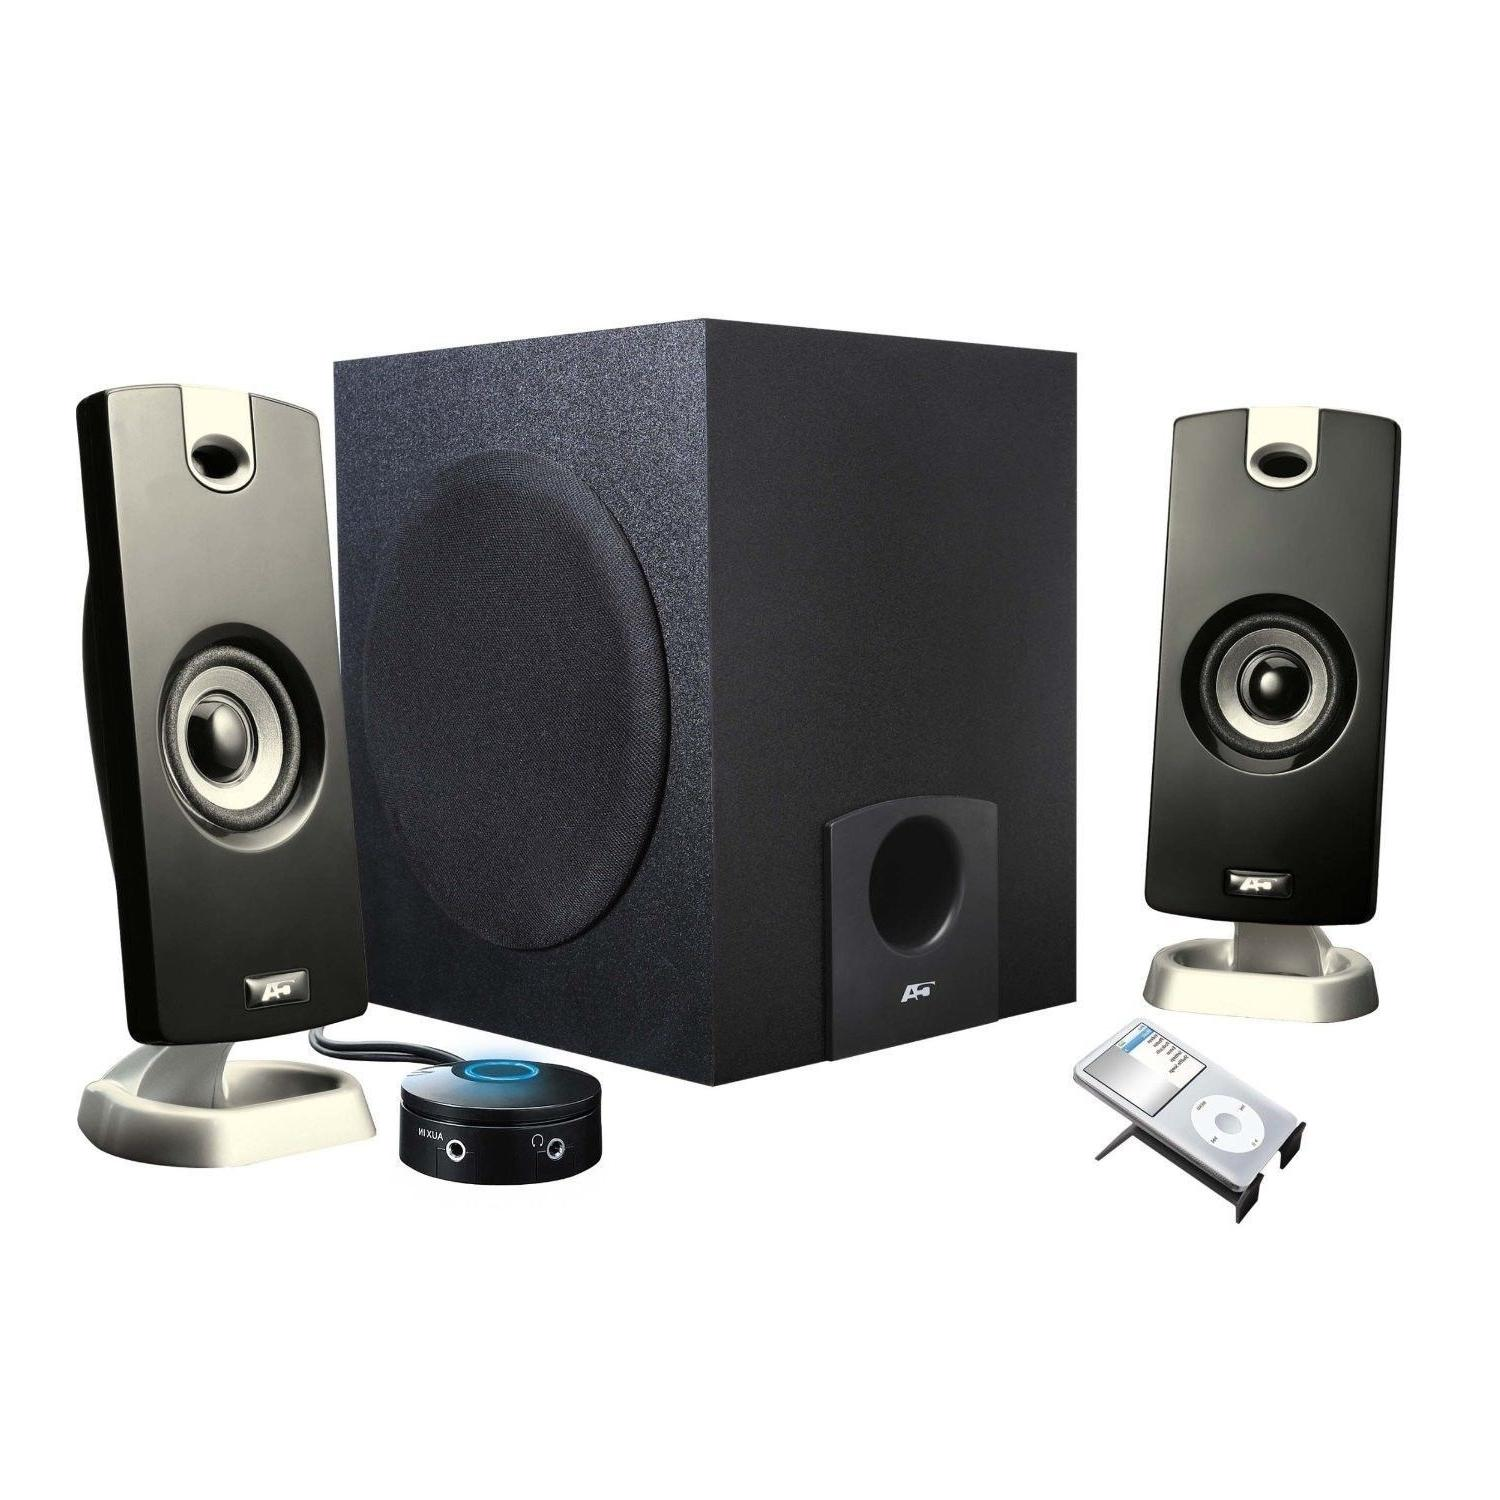 w subwoofer great for video gaming